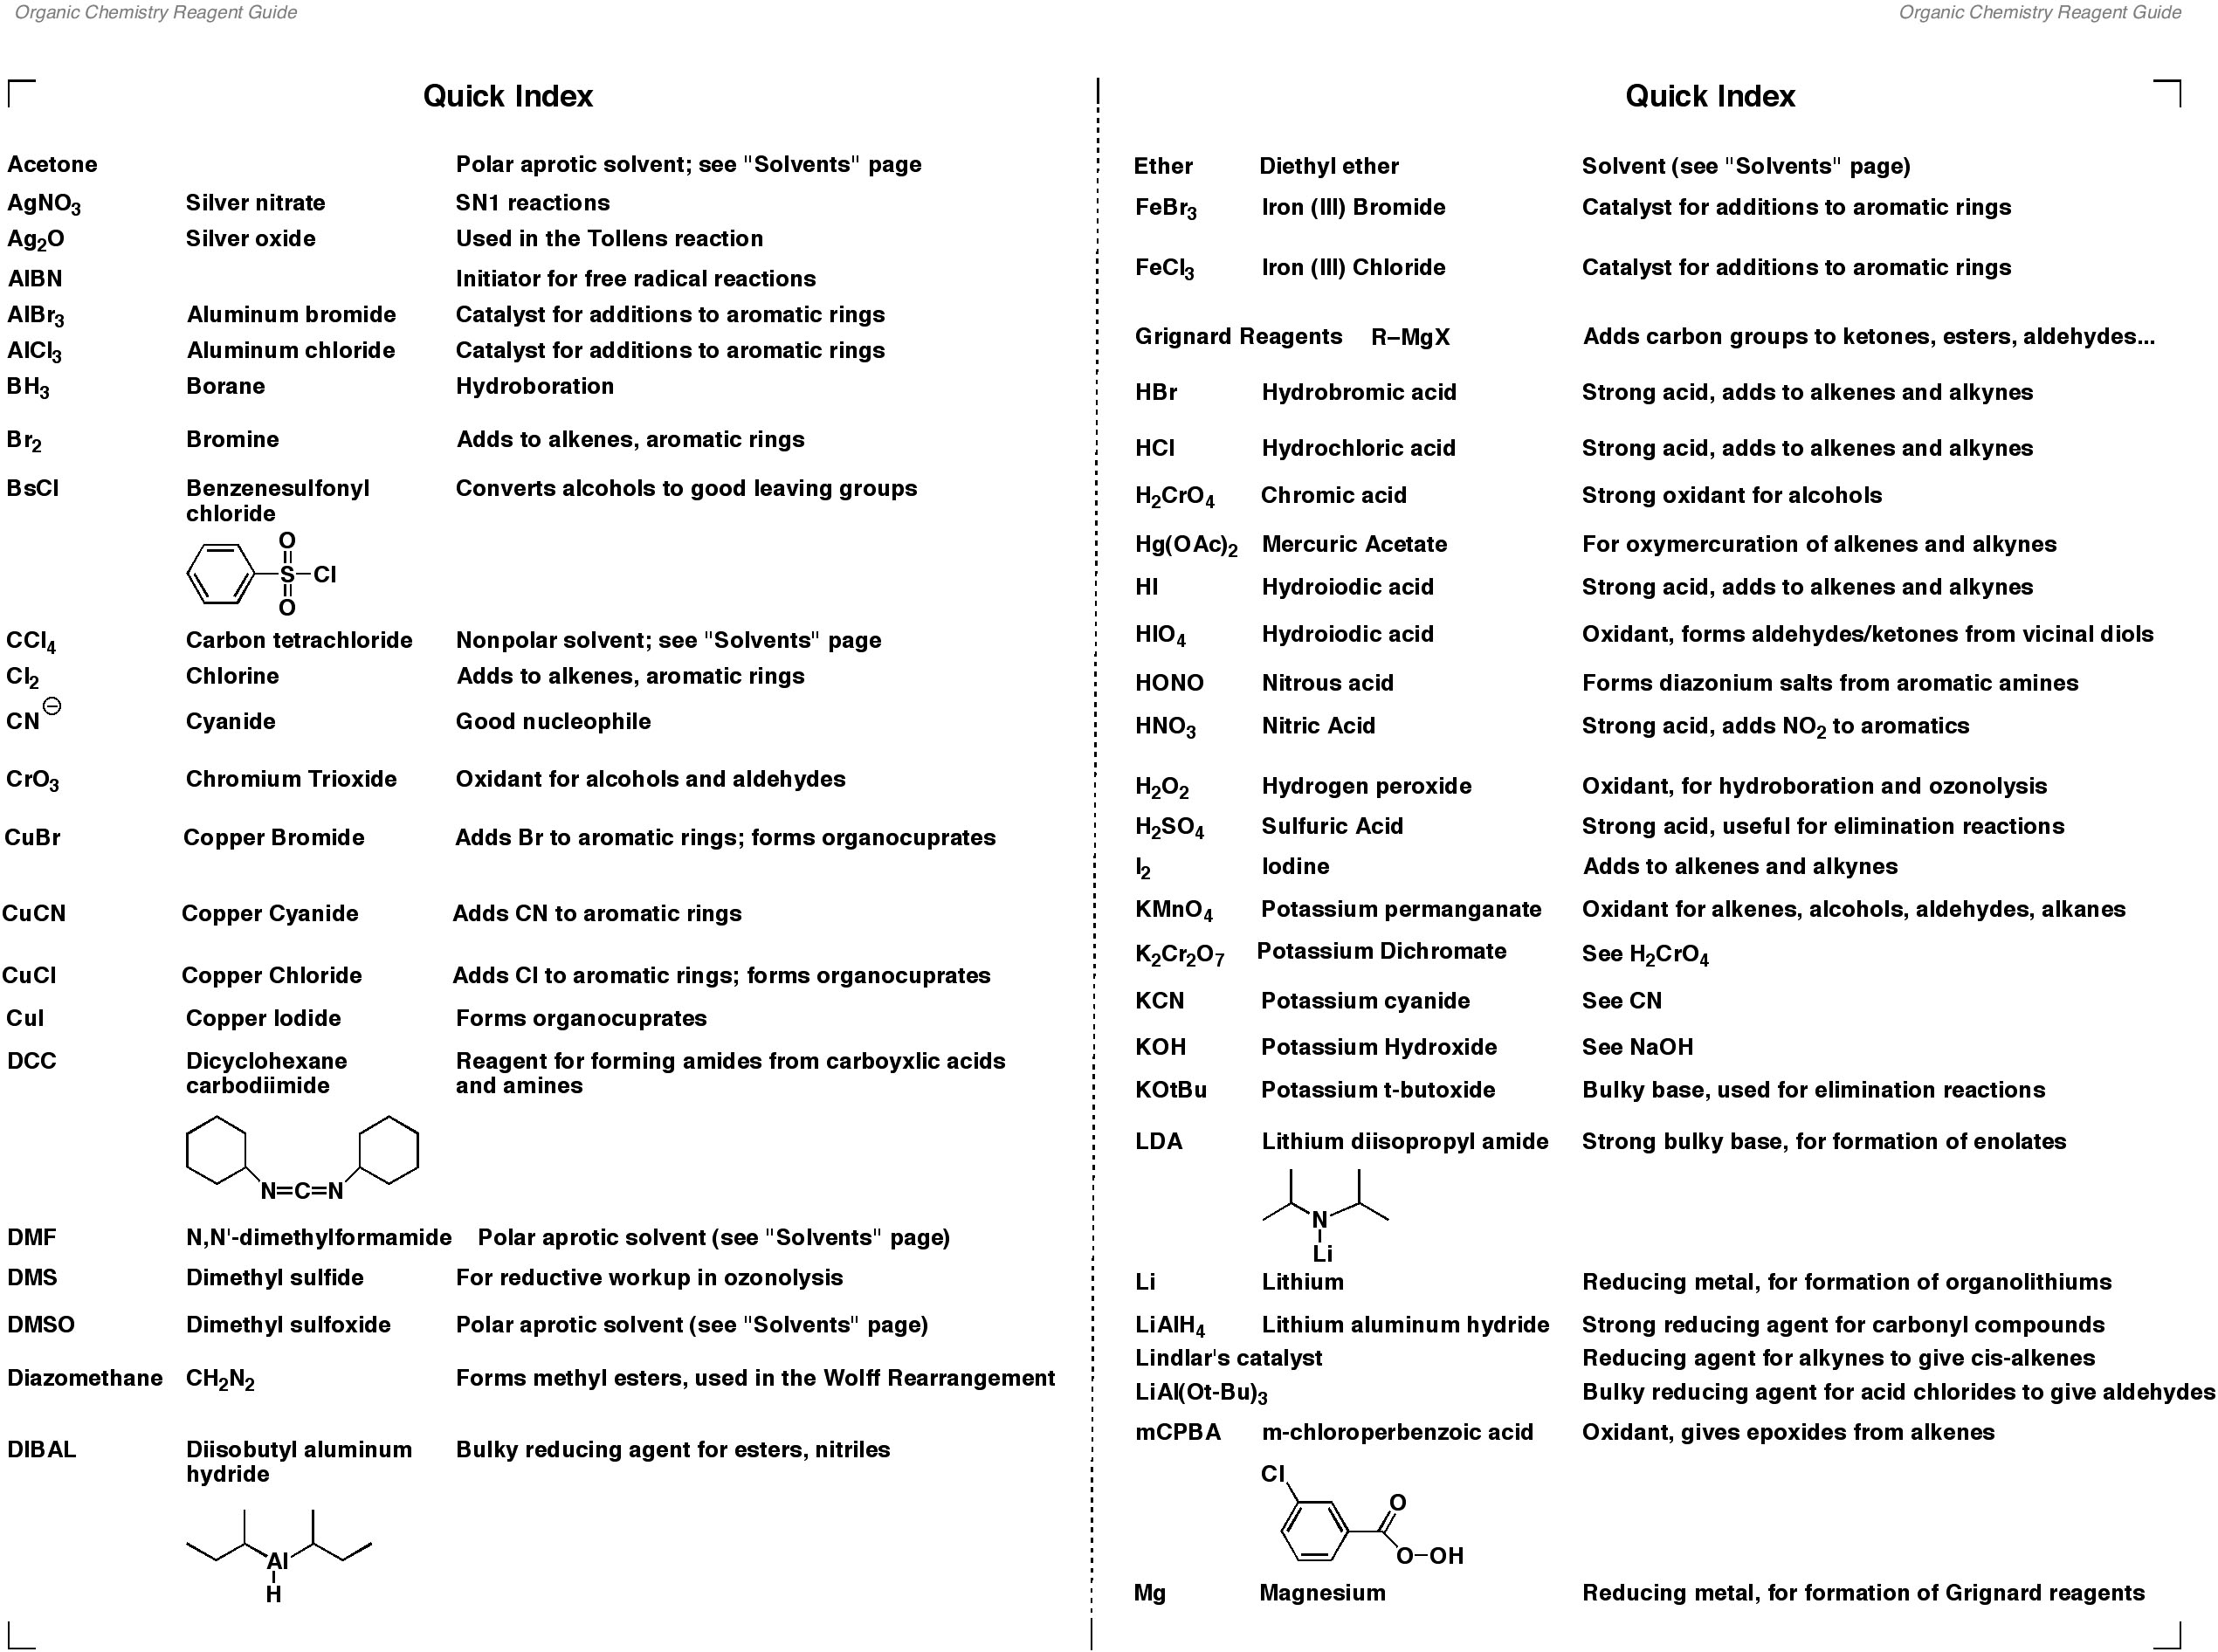 chemistry cheat sheet Chemistry 101 reference/help sheet - units common metric prefixes prefix numerical meaning scientific notation symbol deci 1 10 10−1 d centi 1 100 10−2 c milli 1 1000.